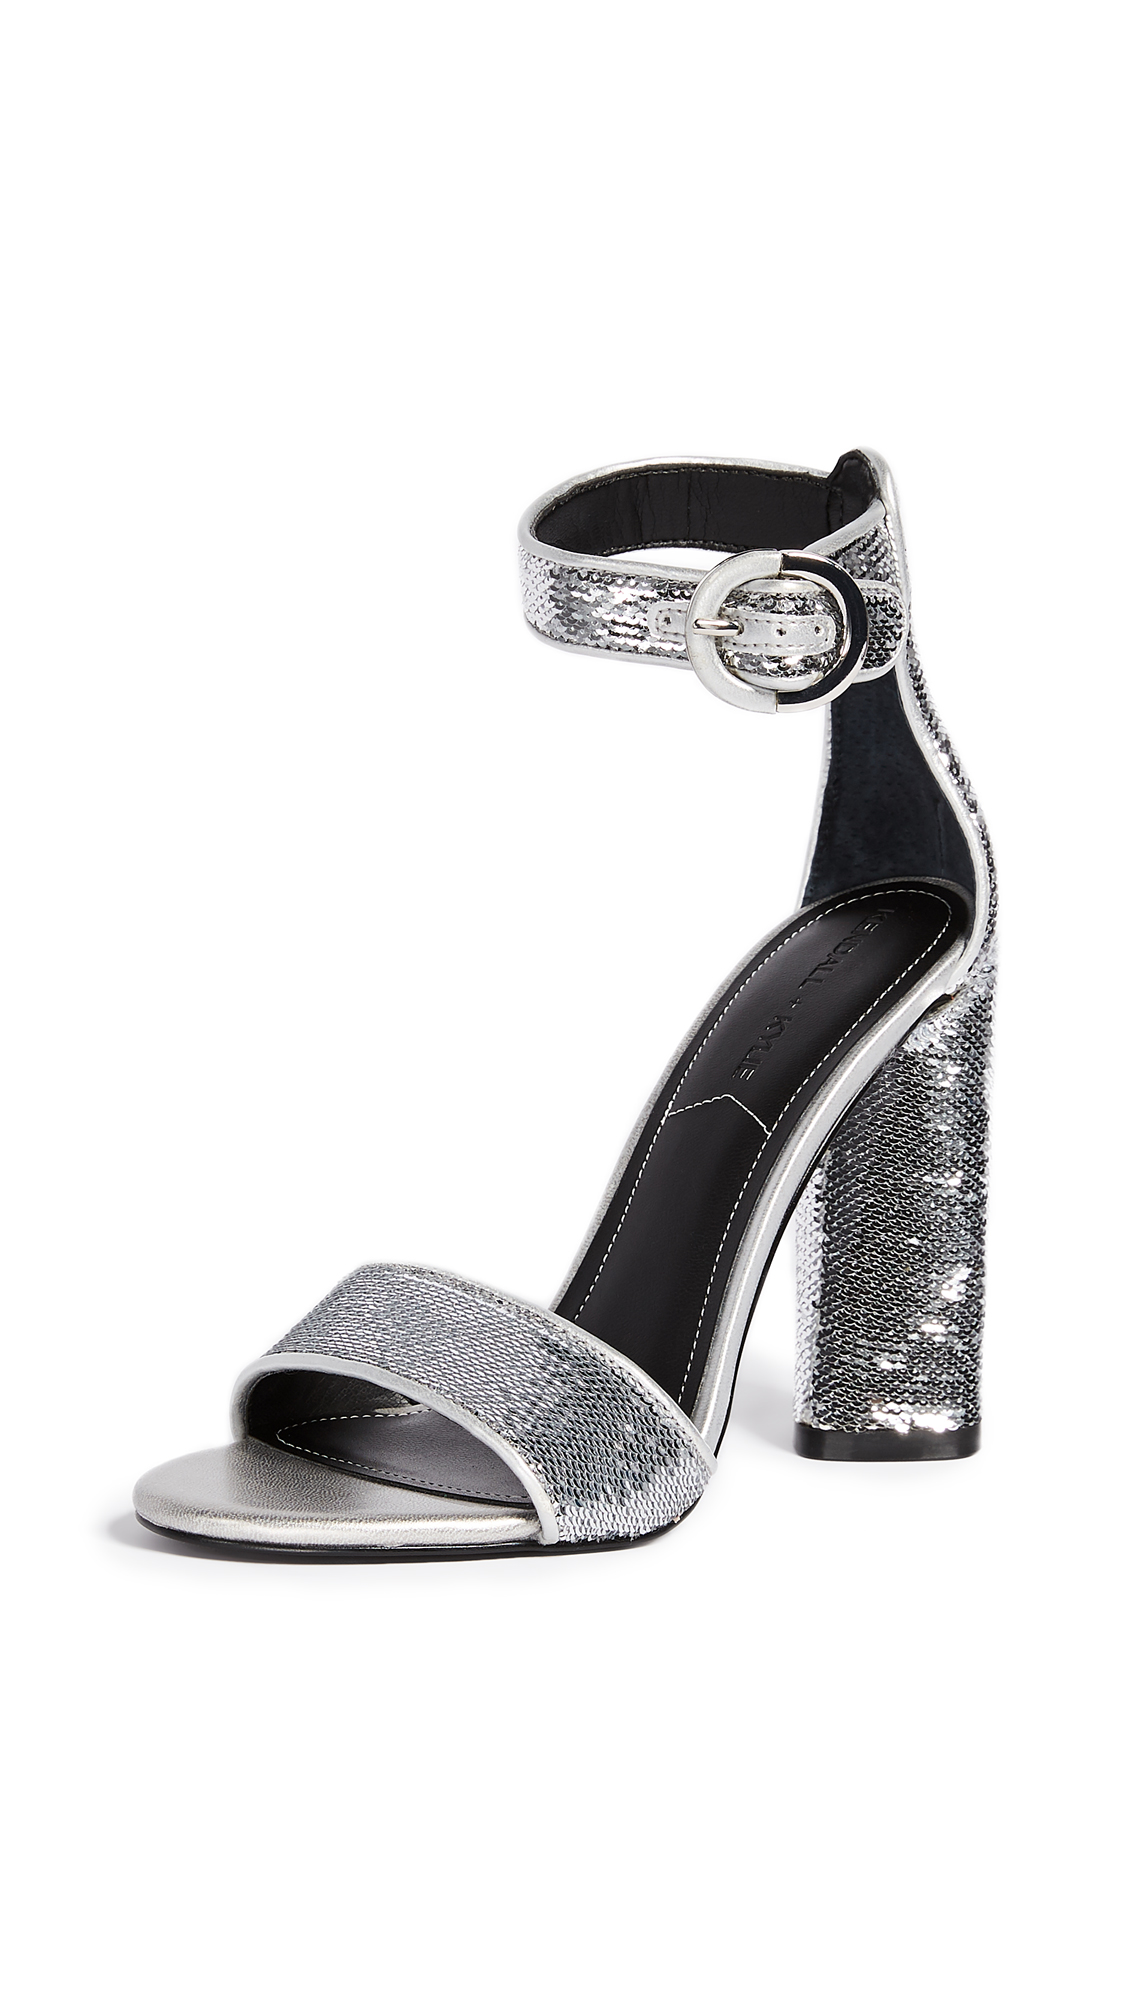 KENDALL + KYLIE Giselle Ankle Strap Sandals - Silver/Silver